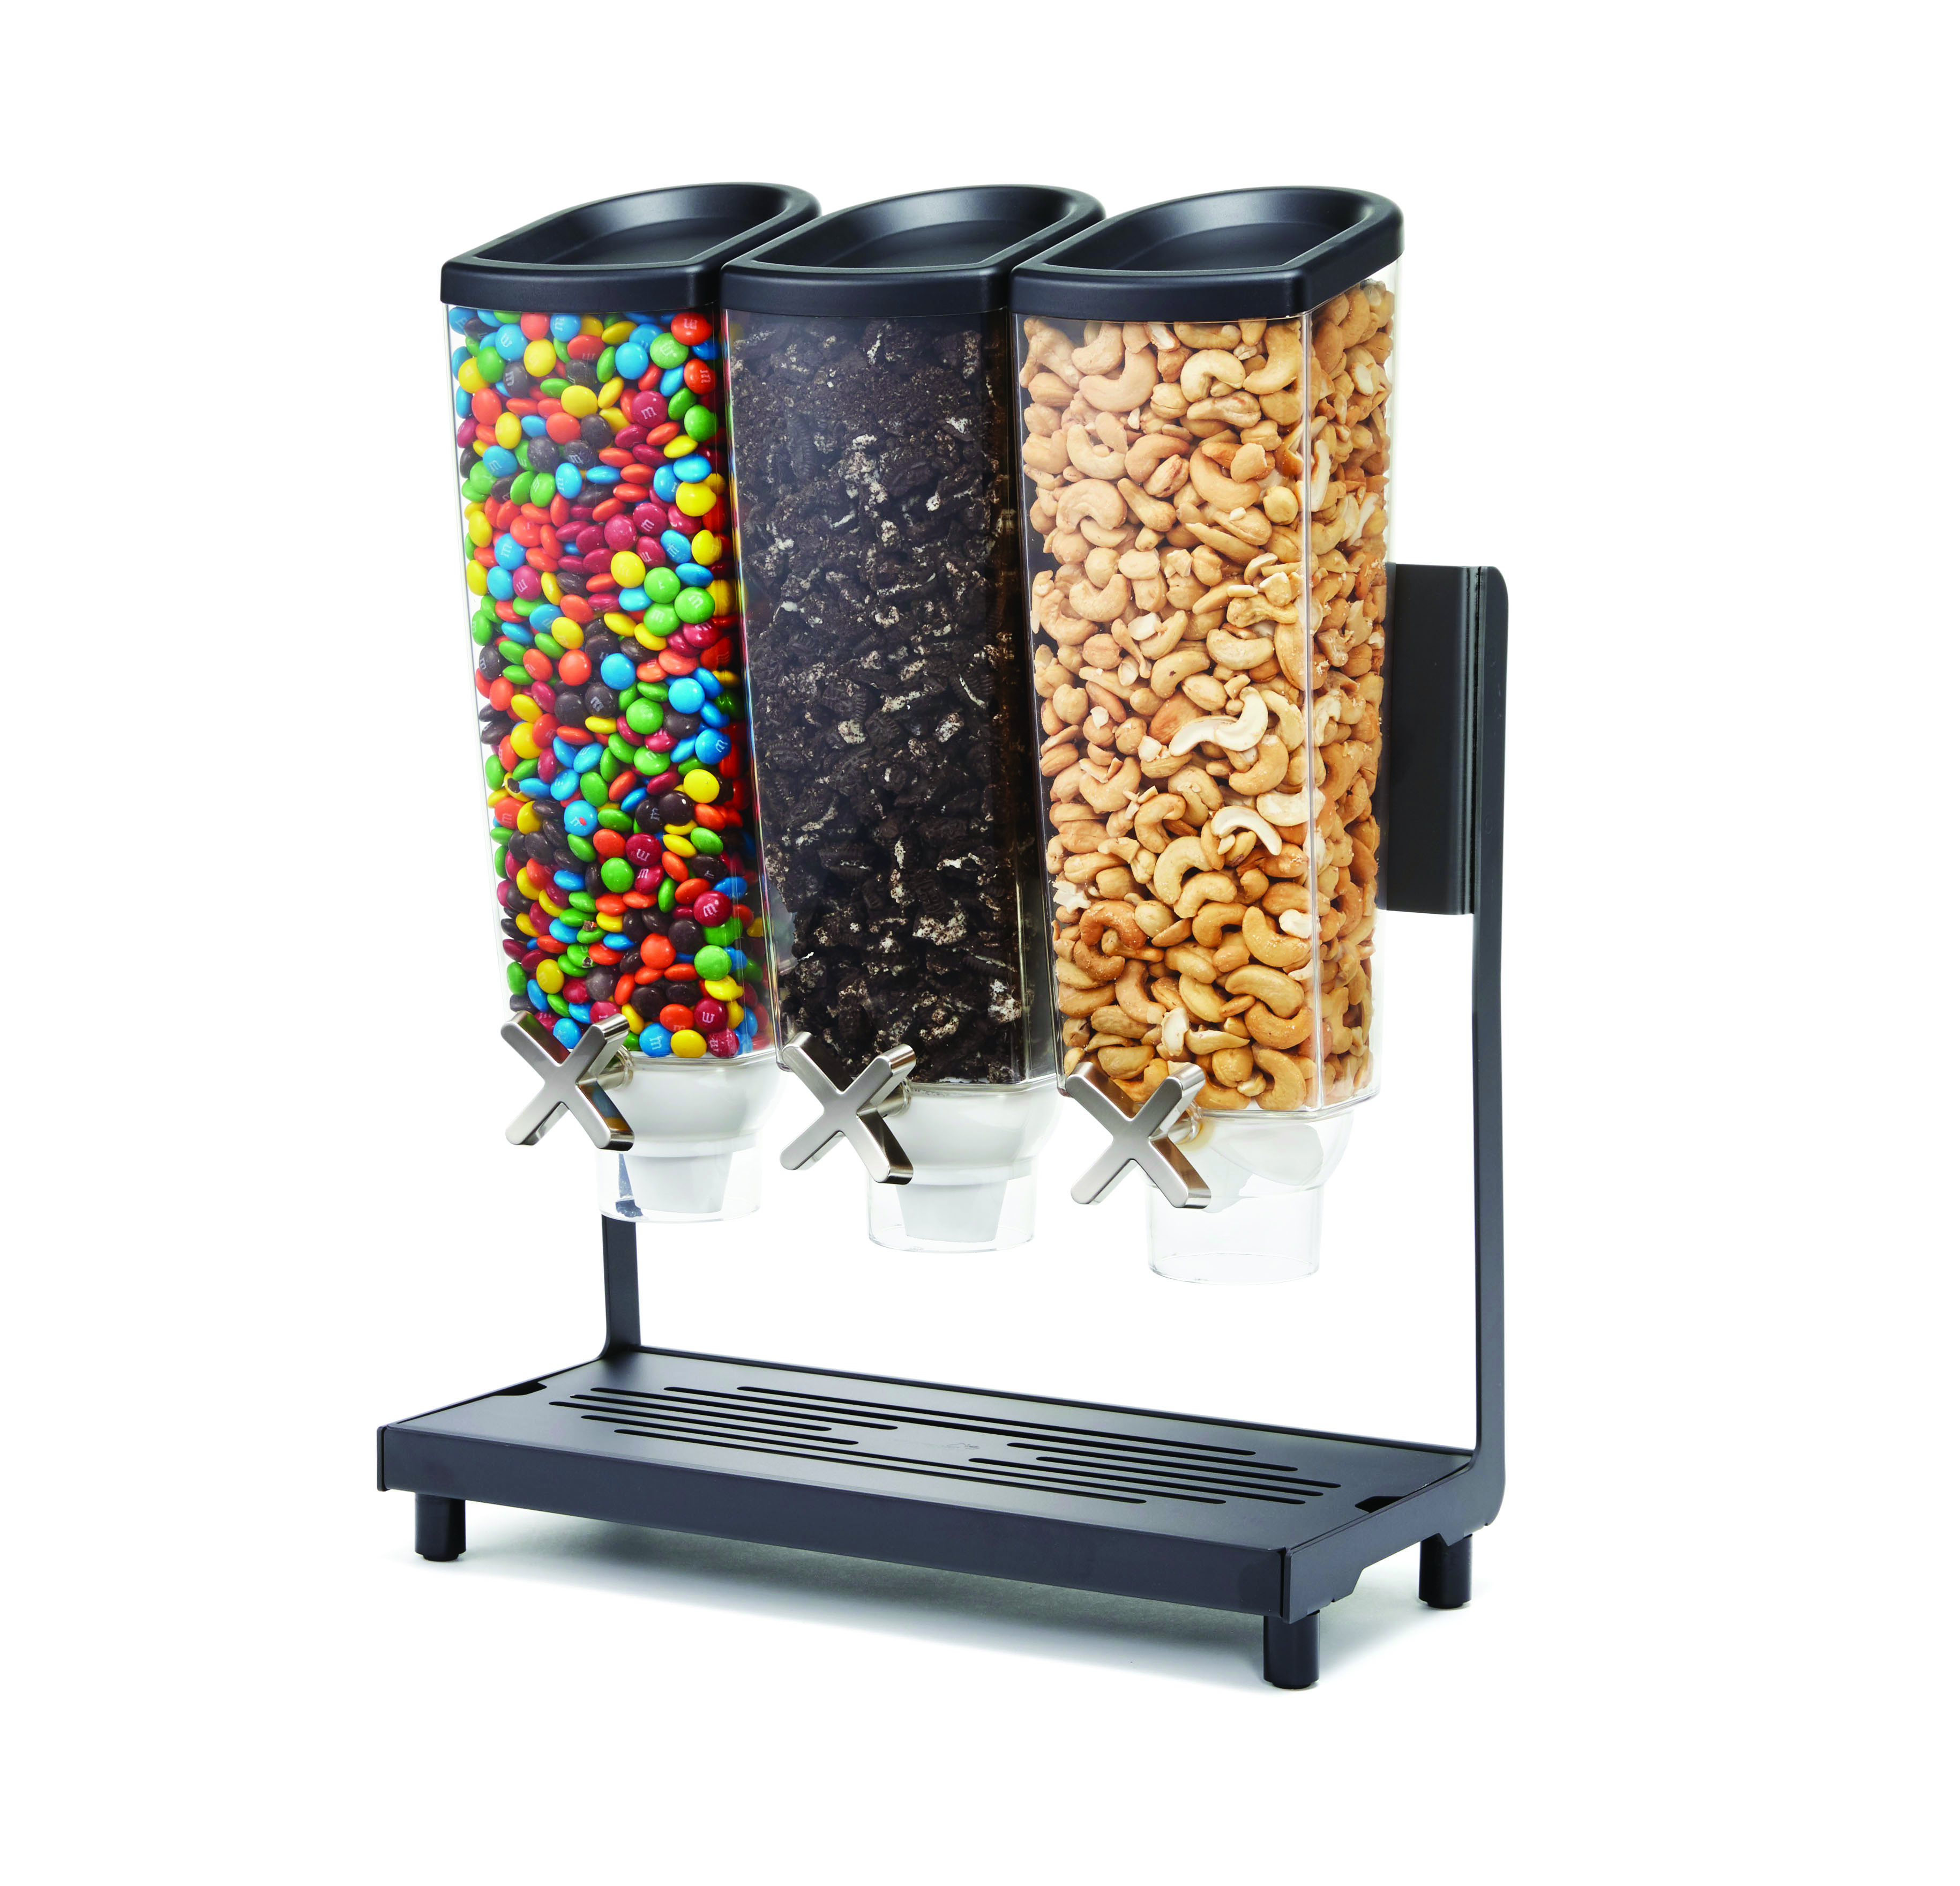 Cereal Dispenser 3 Compartment with Black base